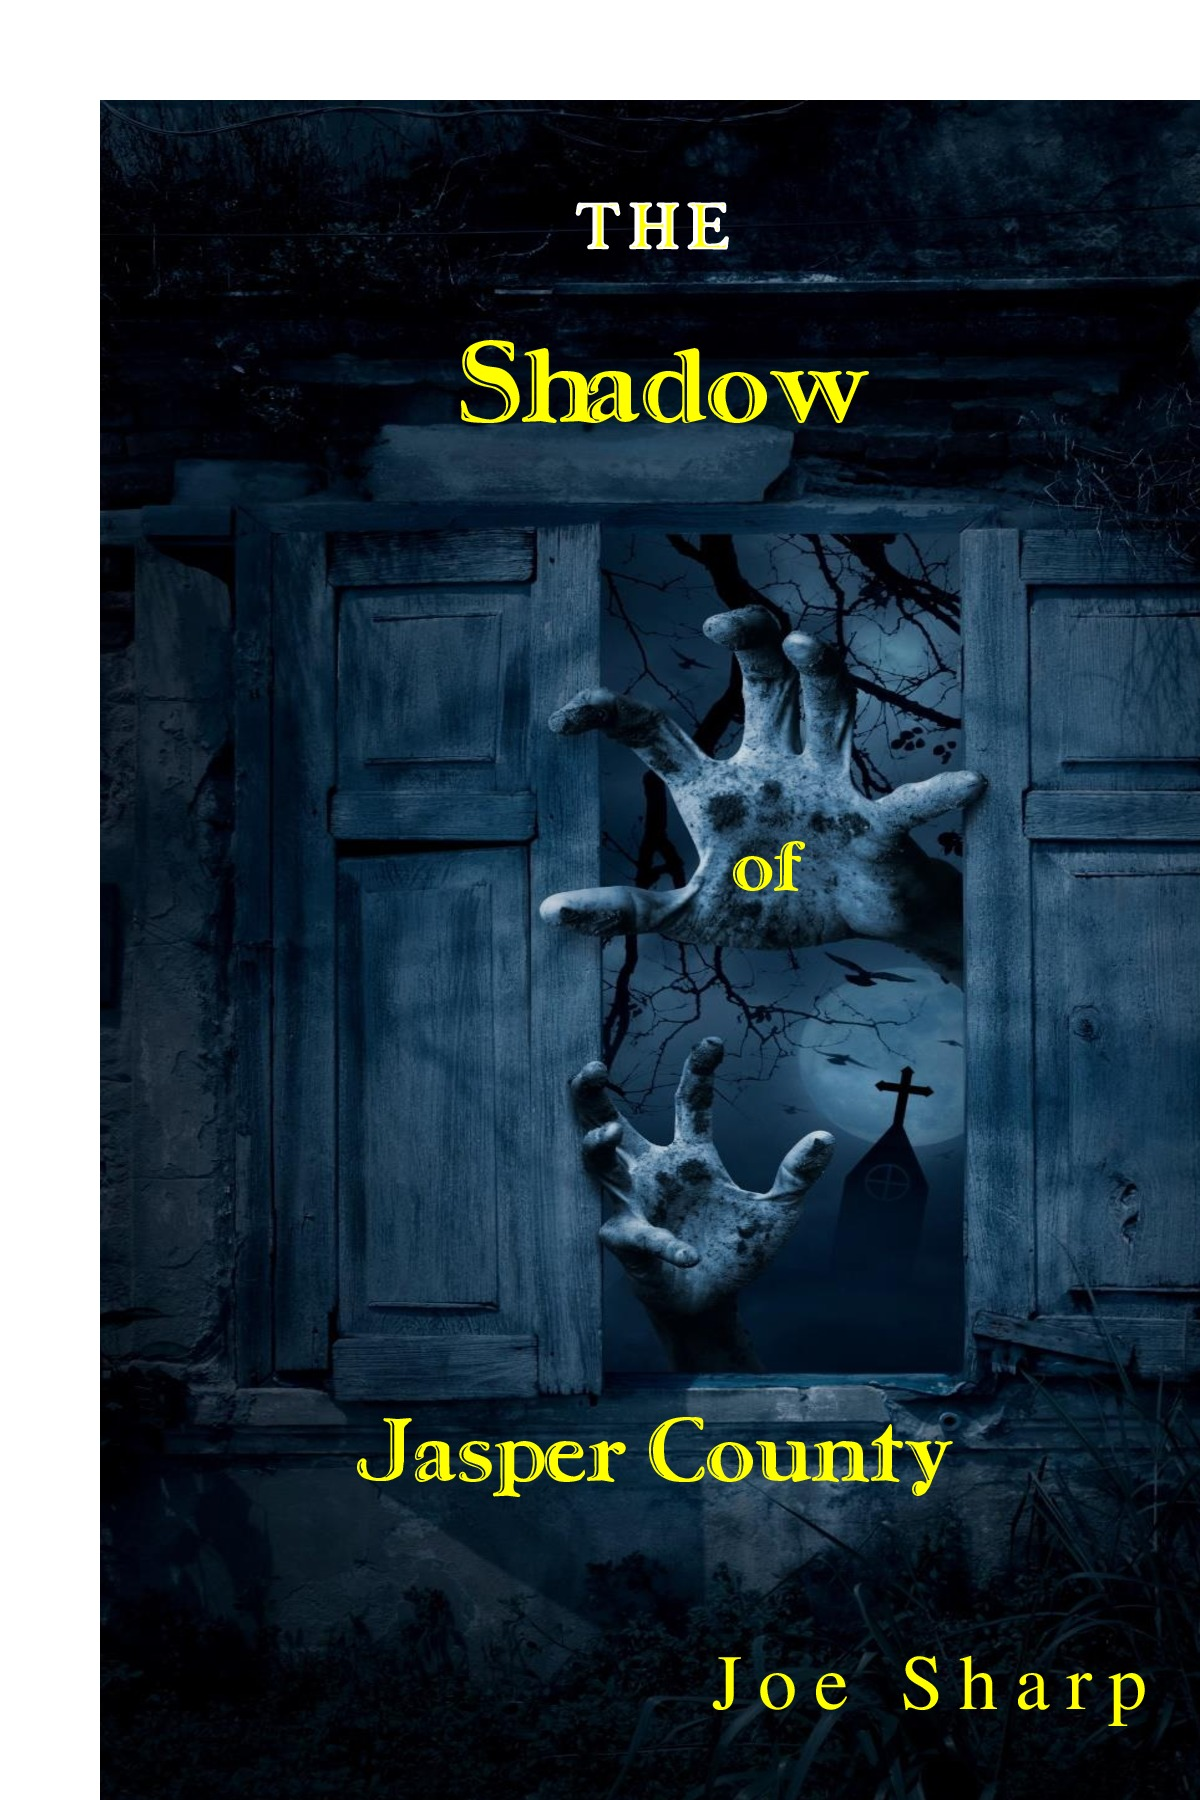 The Shadow of Jasper County